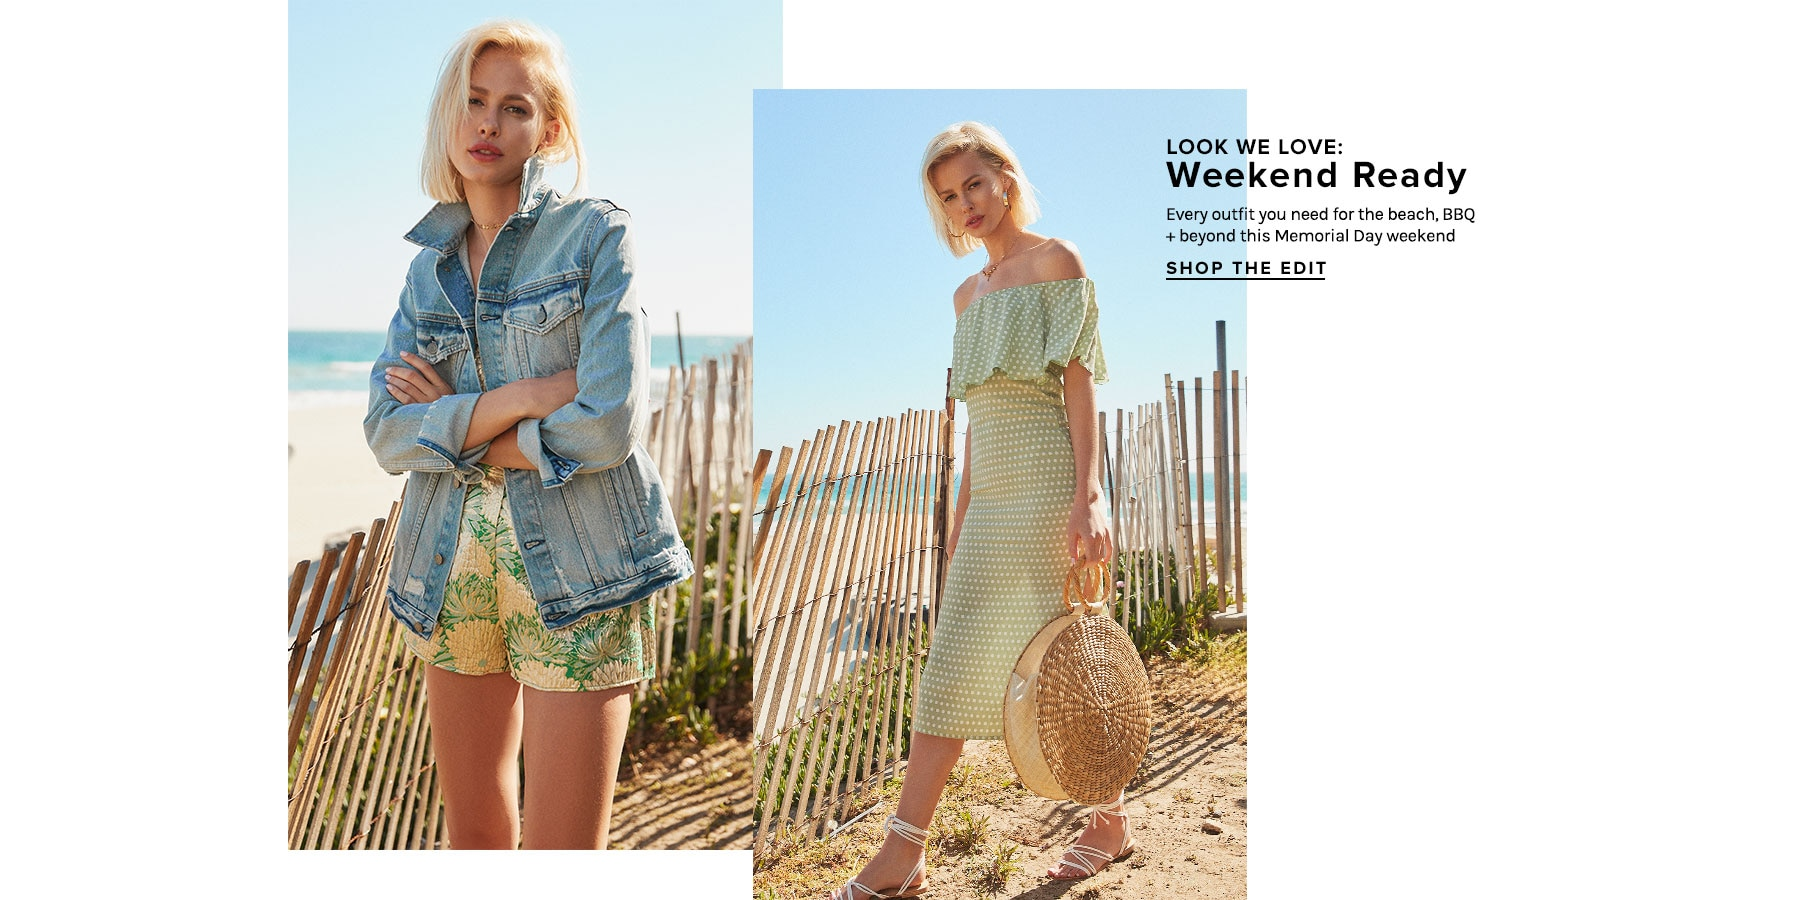 Looks We Love: Weekend Ready. Every outfit you need for the beach, BBQ + beyond this Memorial Day weekend. Shop The Edit.